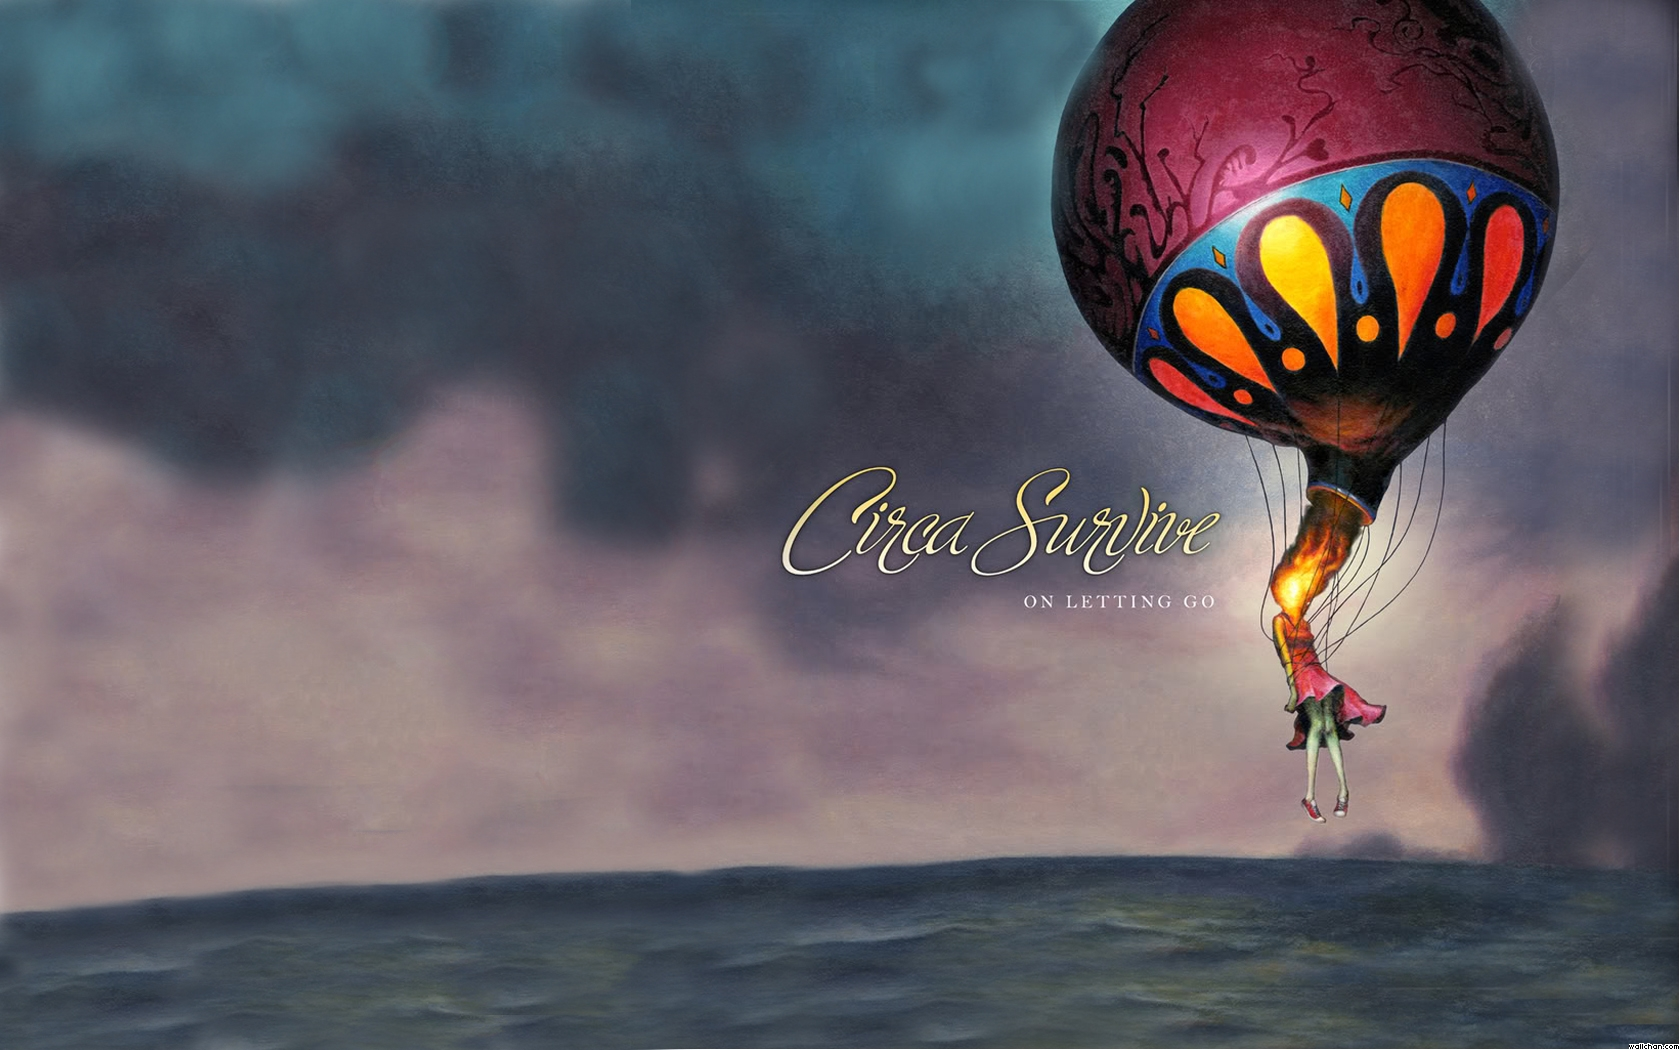 Circa Survive Wallpaper